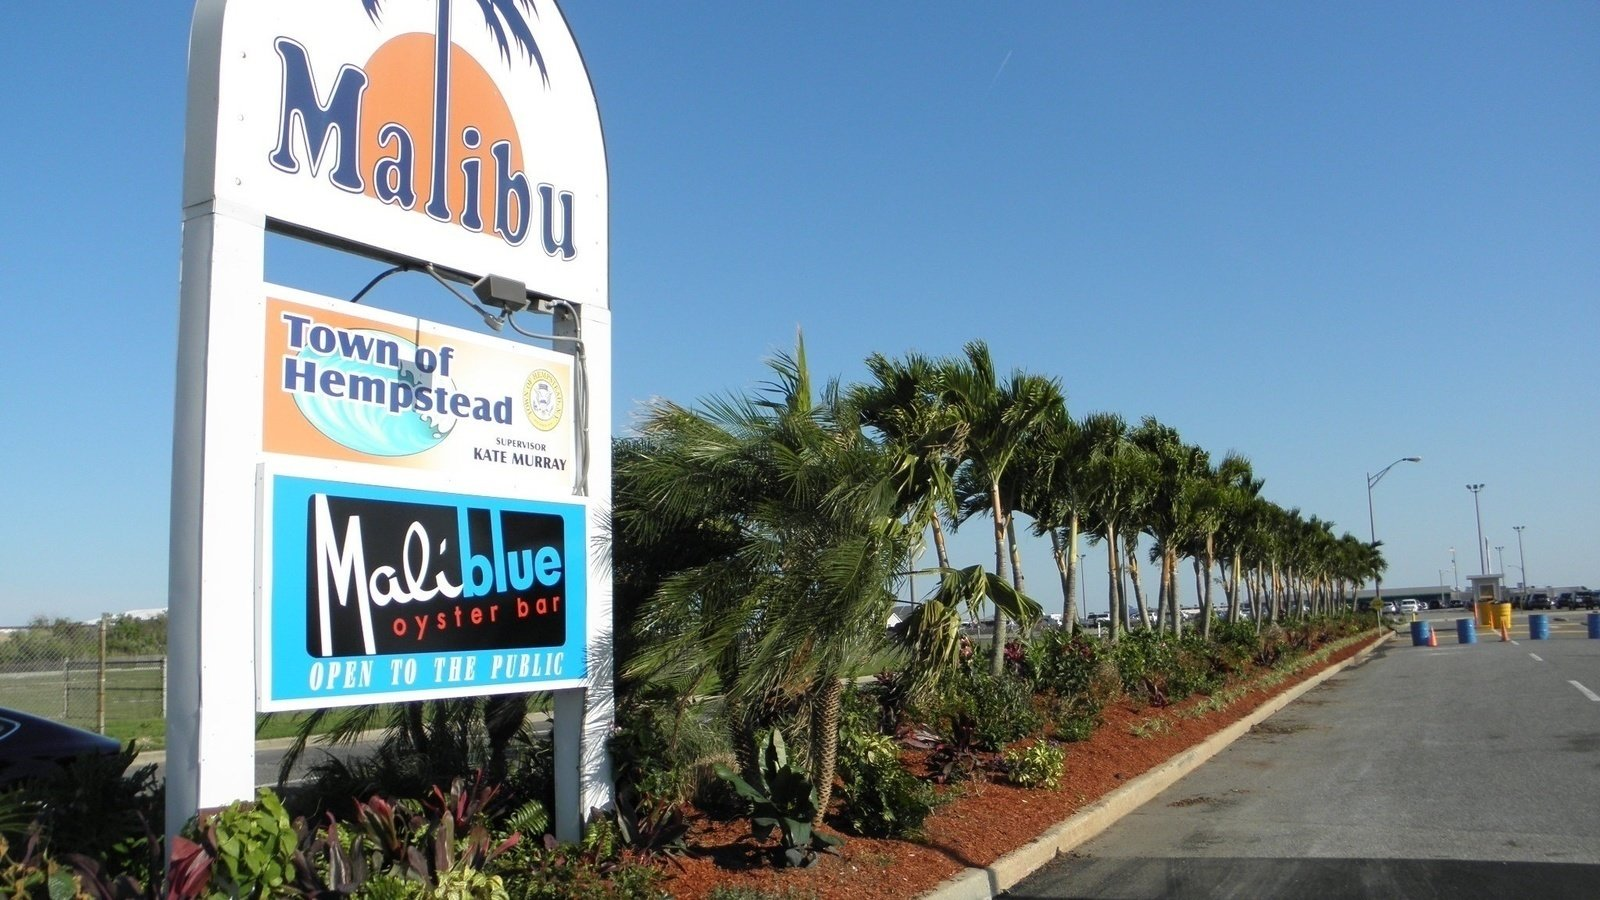 Petition · Show your support for Malibu Shore Club! · Change org